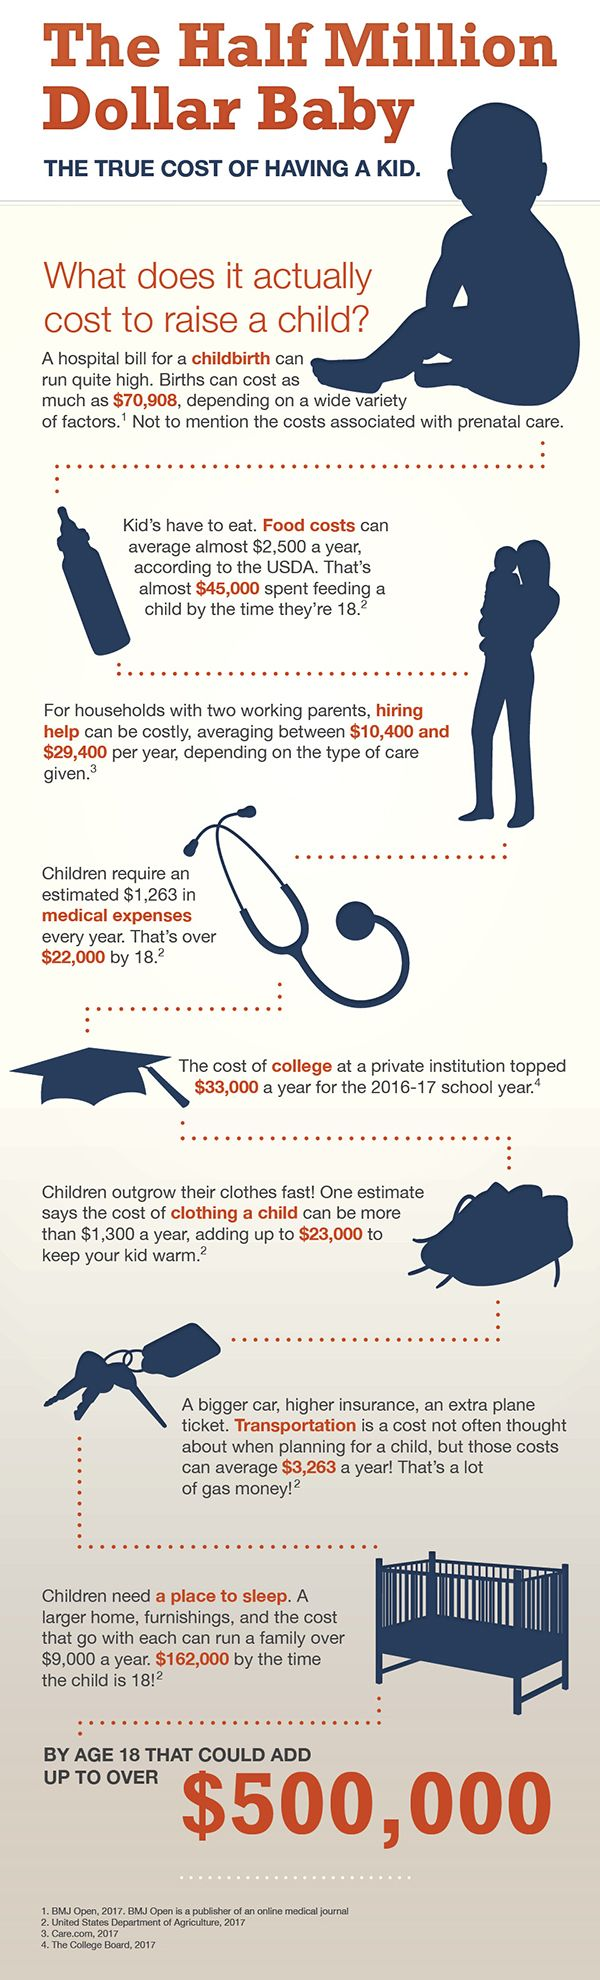 The true cost of raising a child may be far more than you